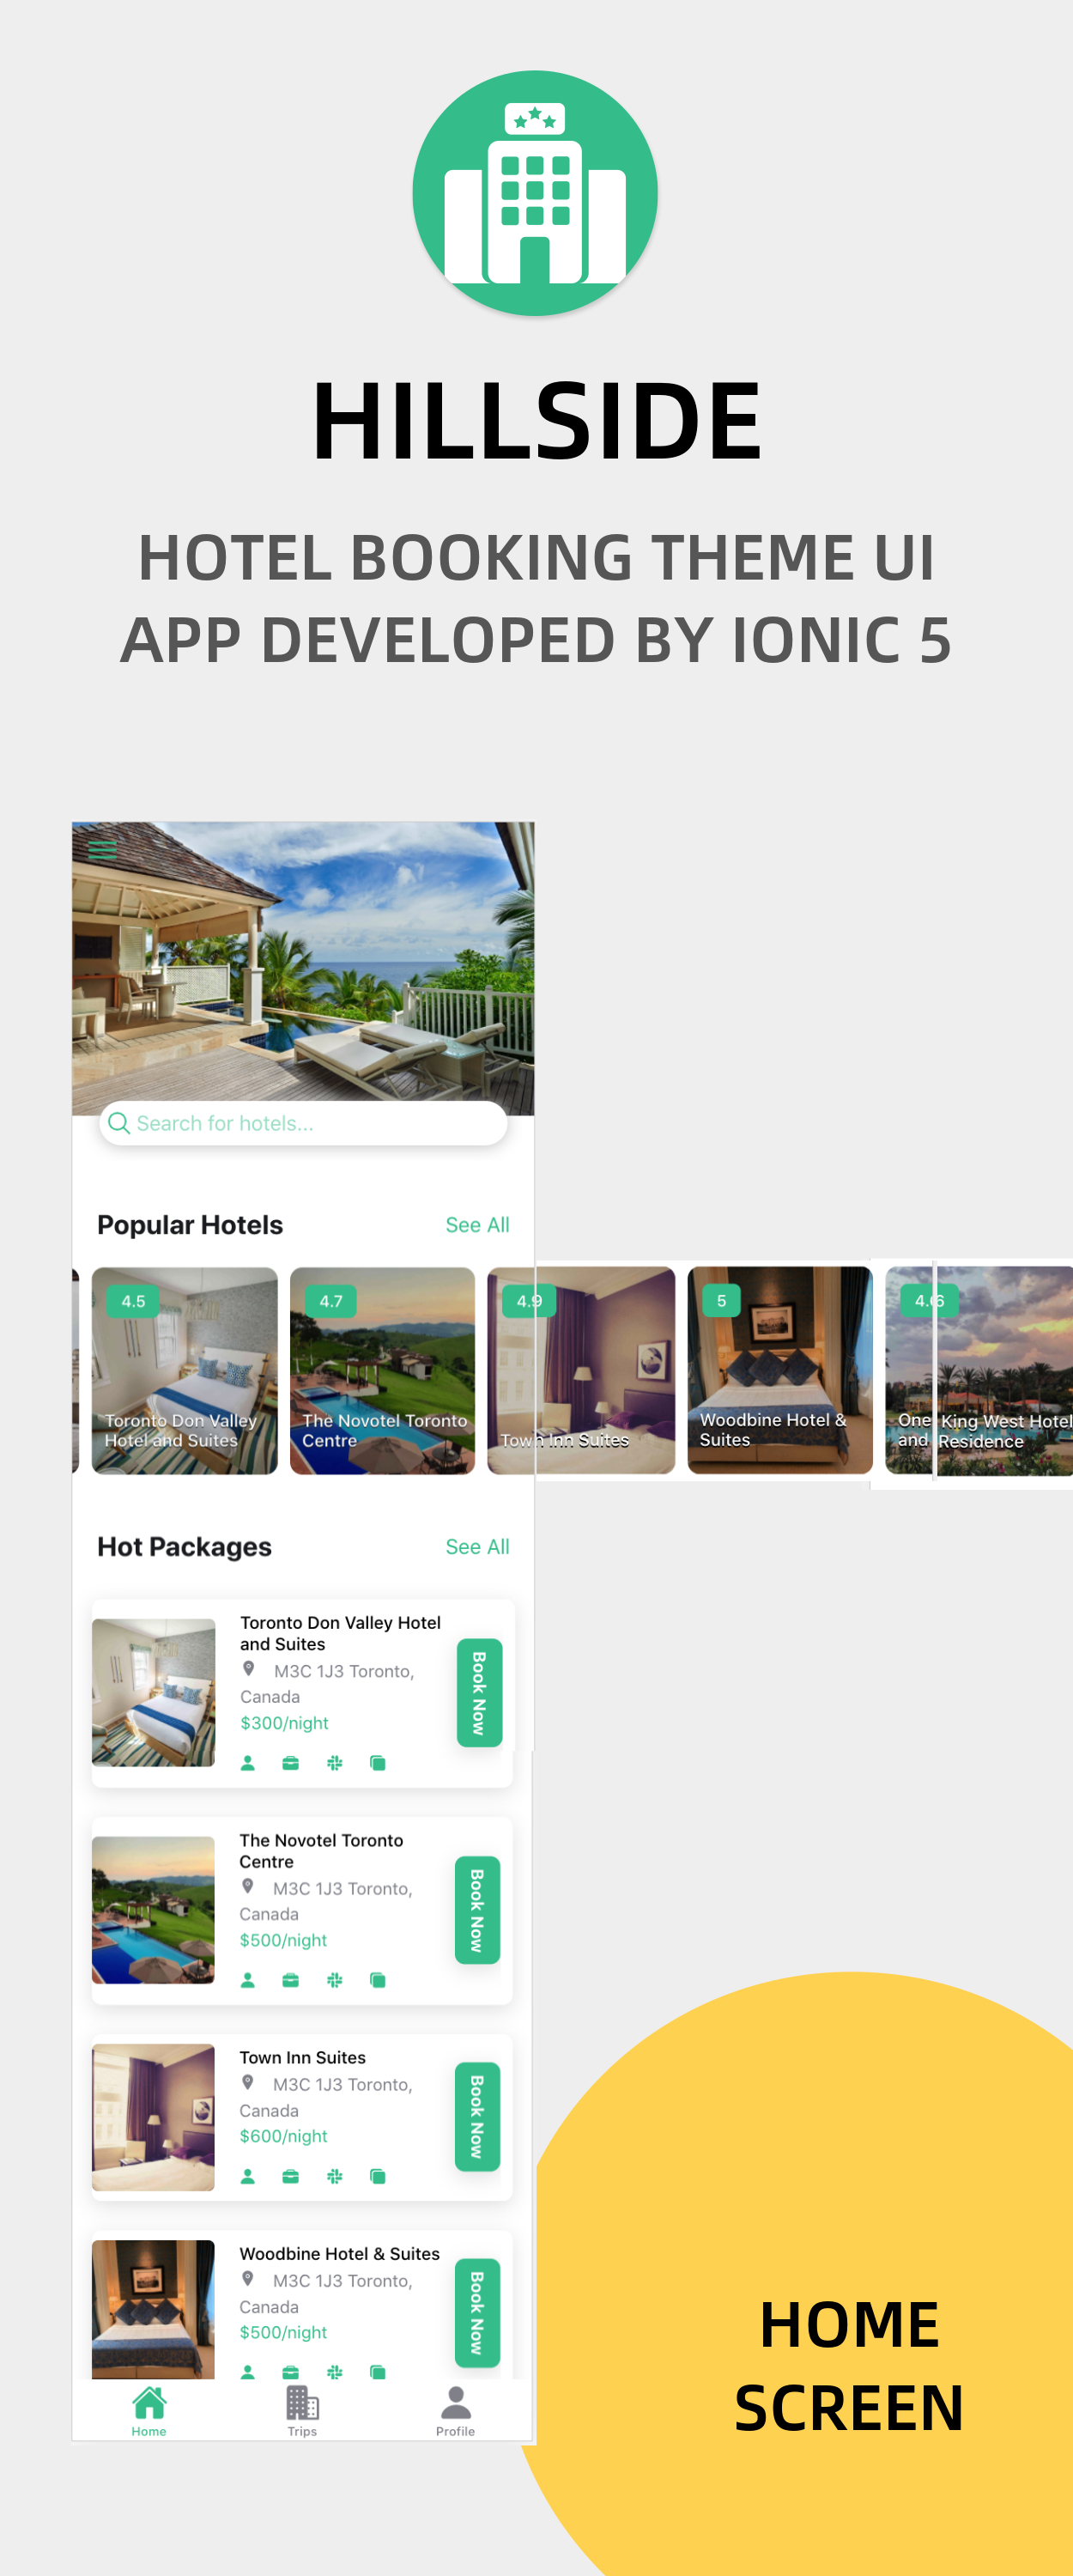 Hillside - A Hotel Booking Theme UI App By Ionic 5 Angular 9 (Latest) - 2